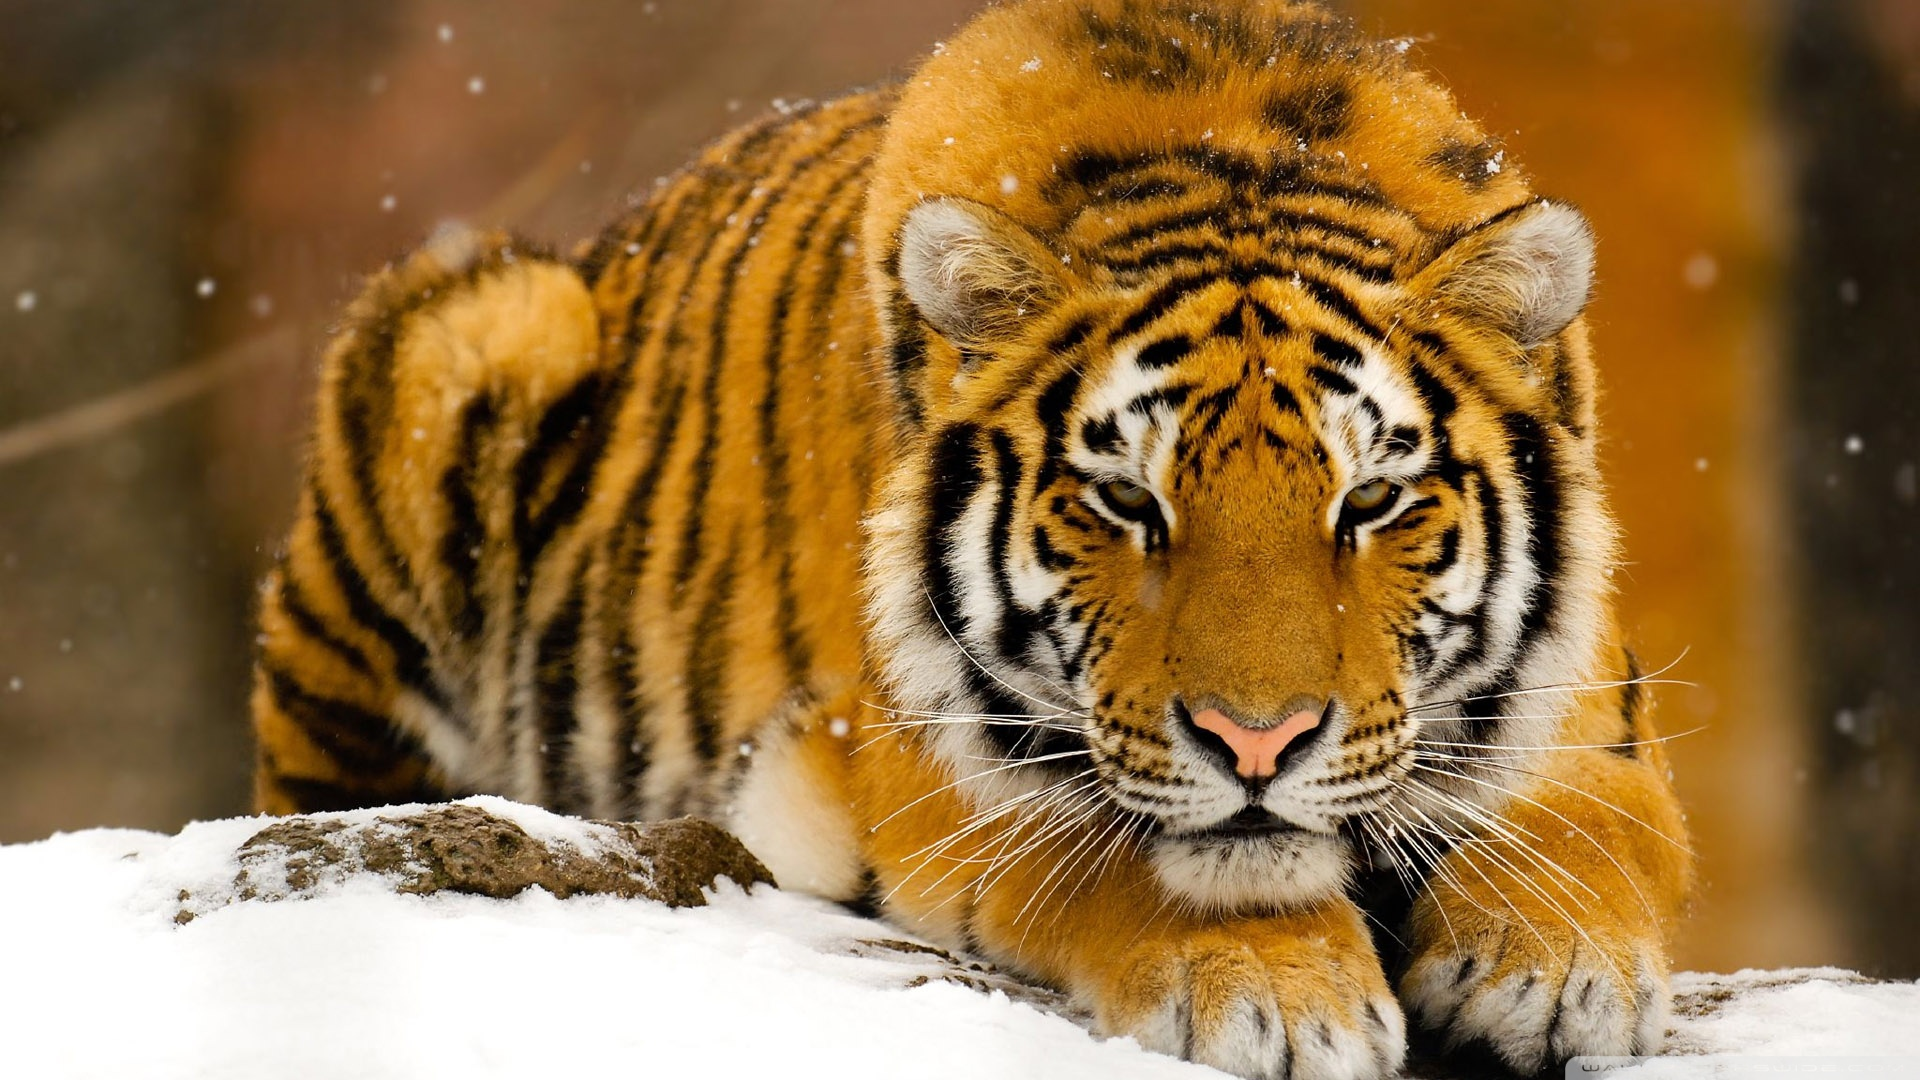 tiger wallpaper desktop HD